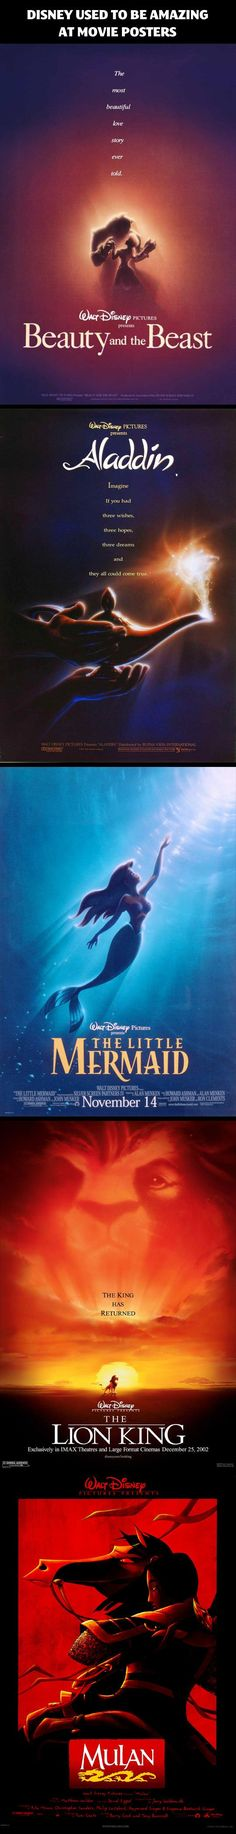 Old Disney posters...These are epic.